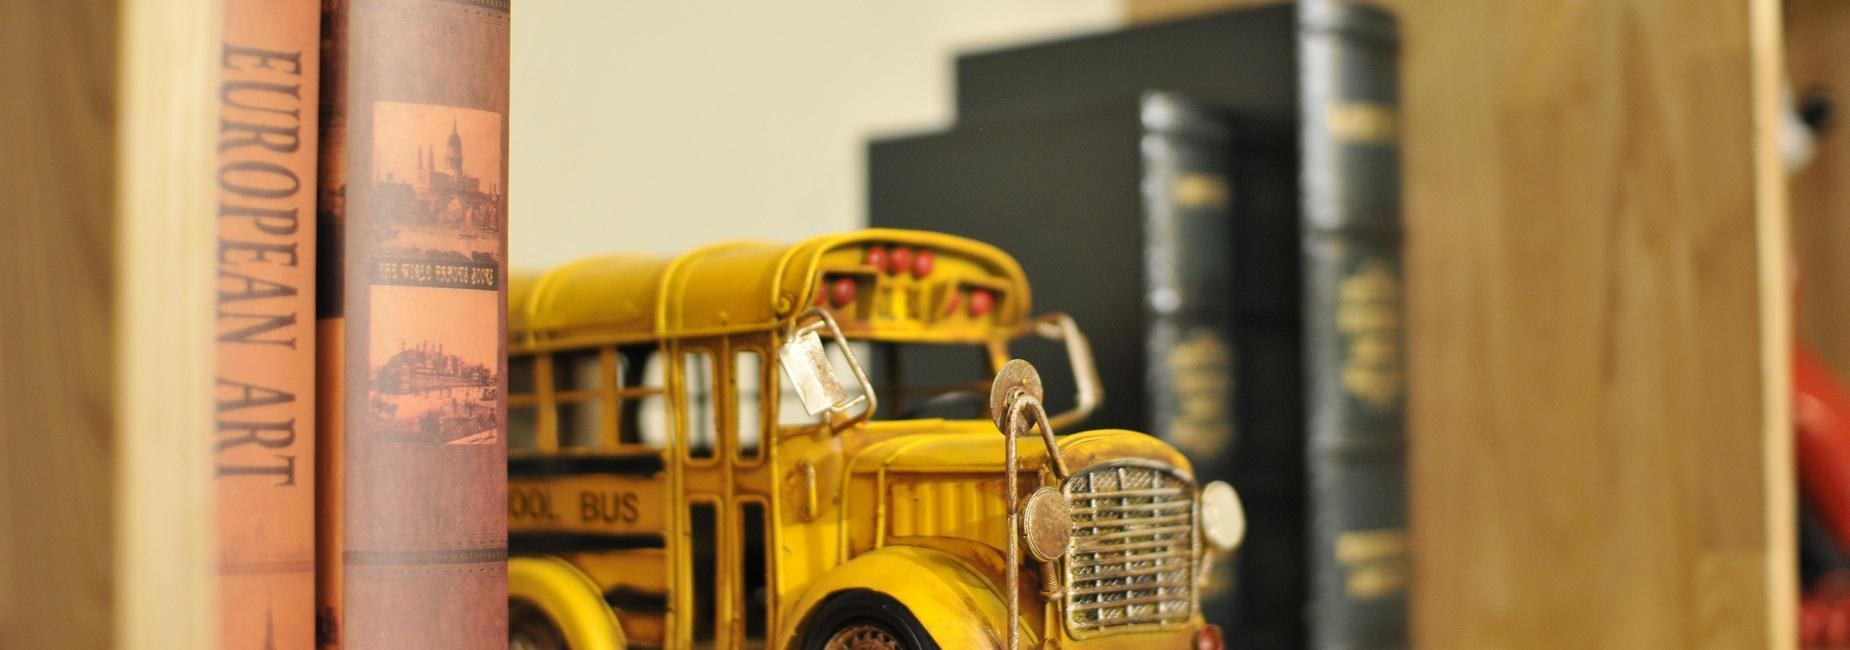 Books and toy bus